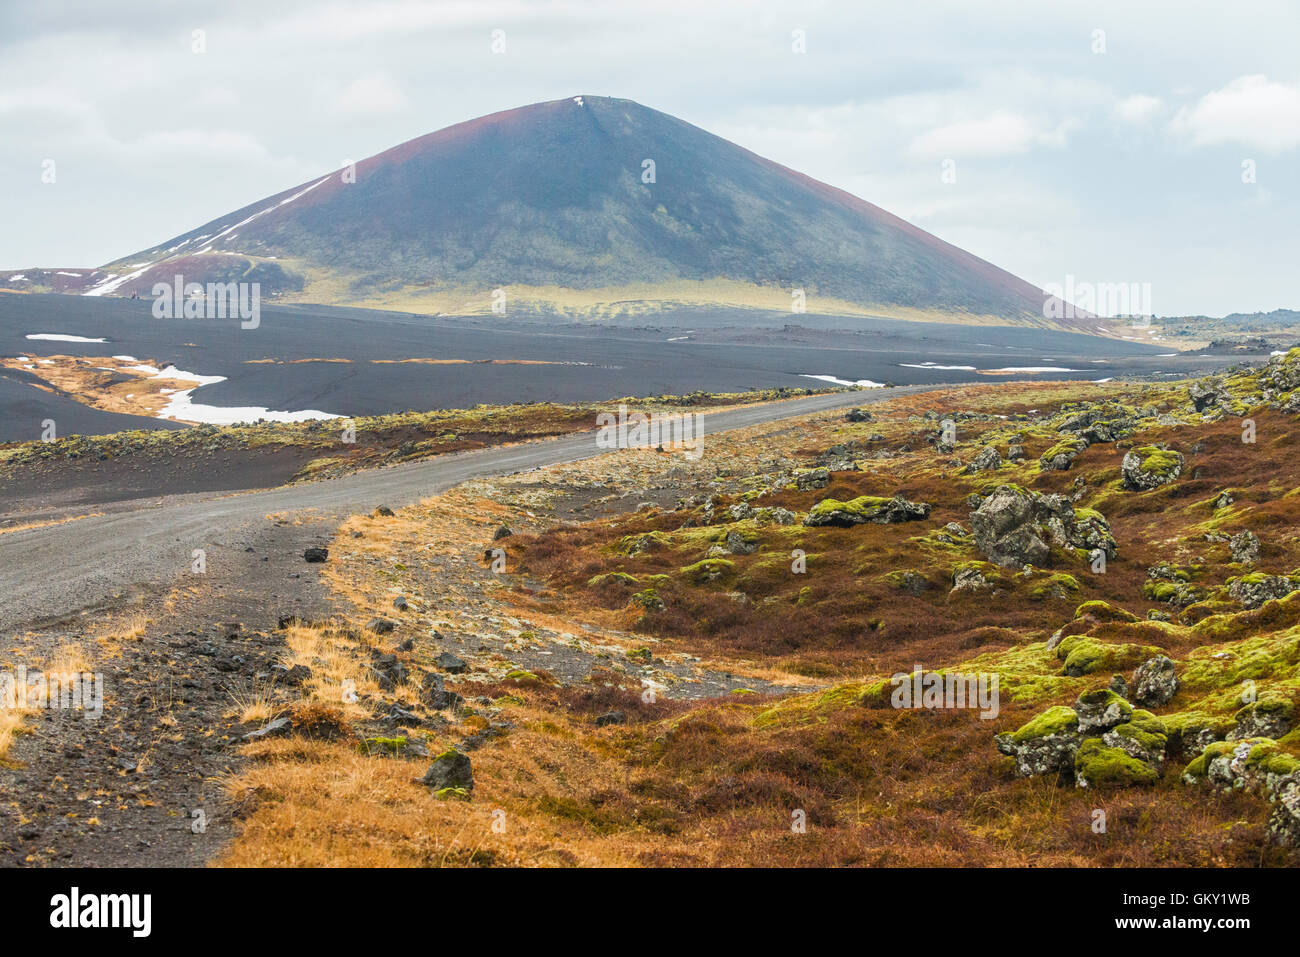 Ash crater in the Berserkjahraun lava field on the Snaefellsnes peninsula in western Iceland - Stock Image